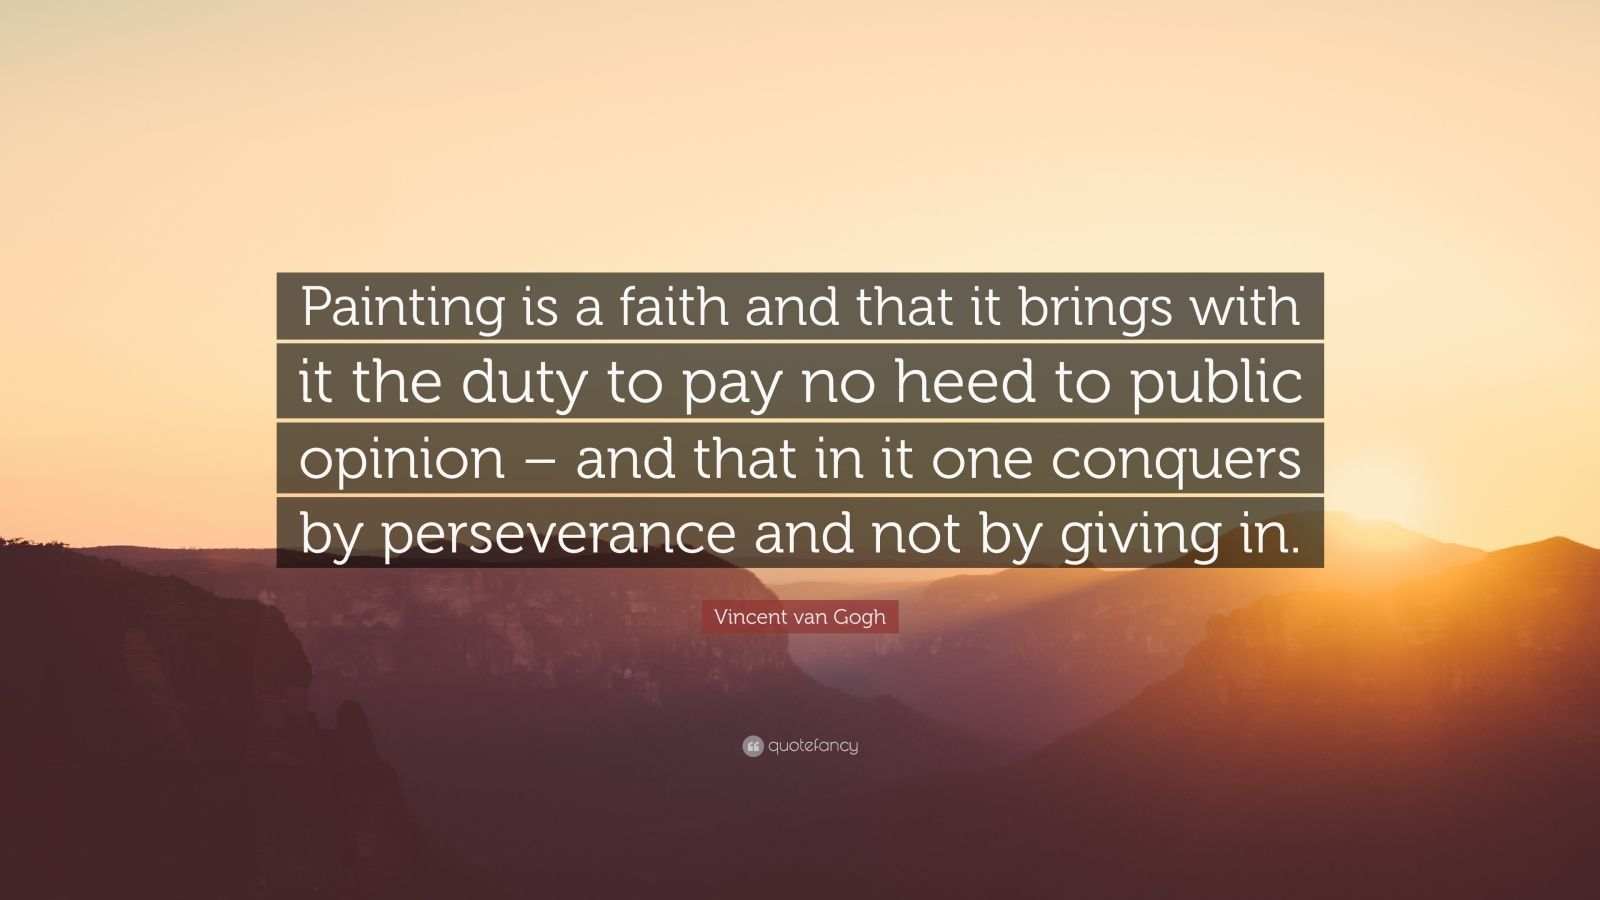 """Vincent van Gogh Quote: """"Painting is a faith and that it brings with it the duty to pay no heed to public opinion – and that in it one conquers by perseverance and not by giving in."""""""